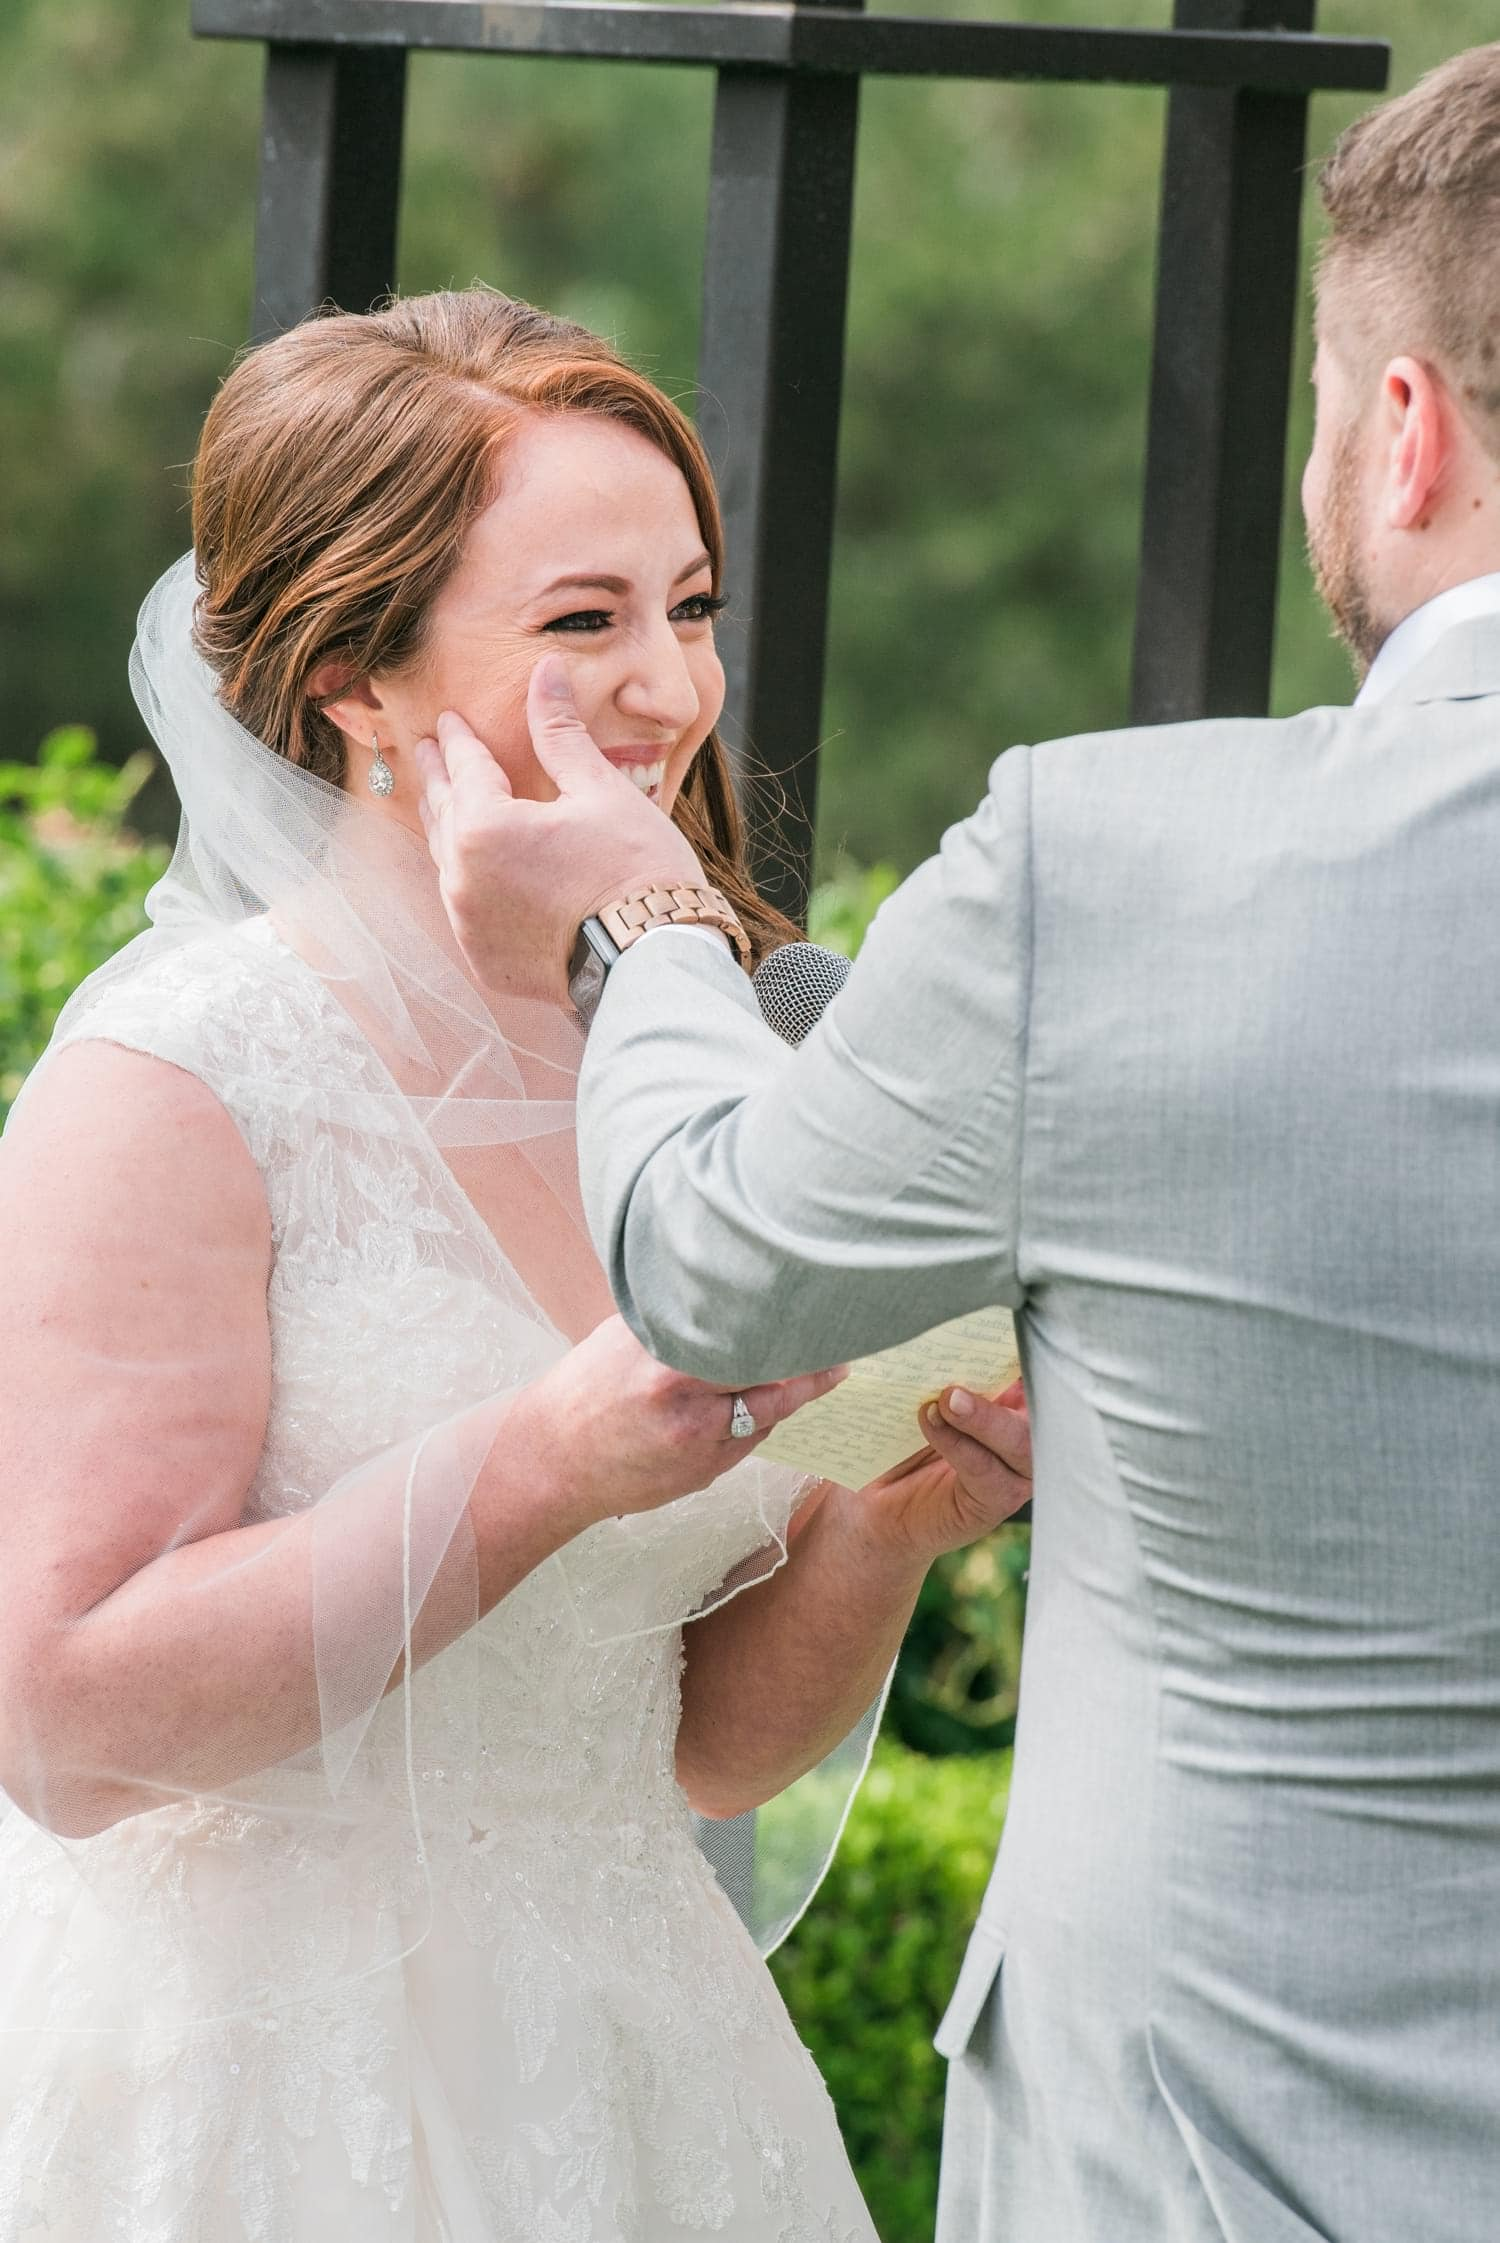 Groom wiping away tears from his bride's face.